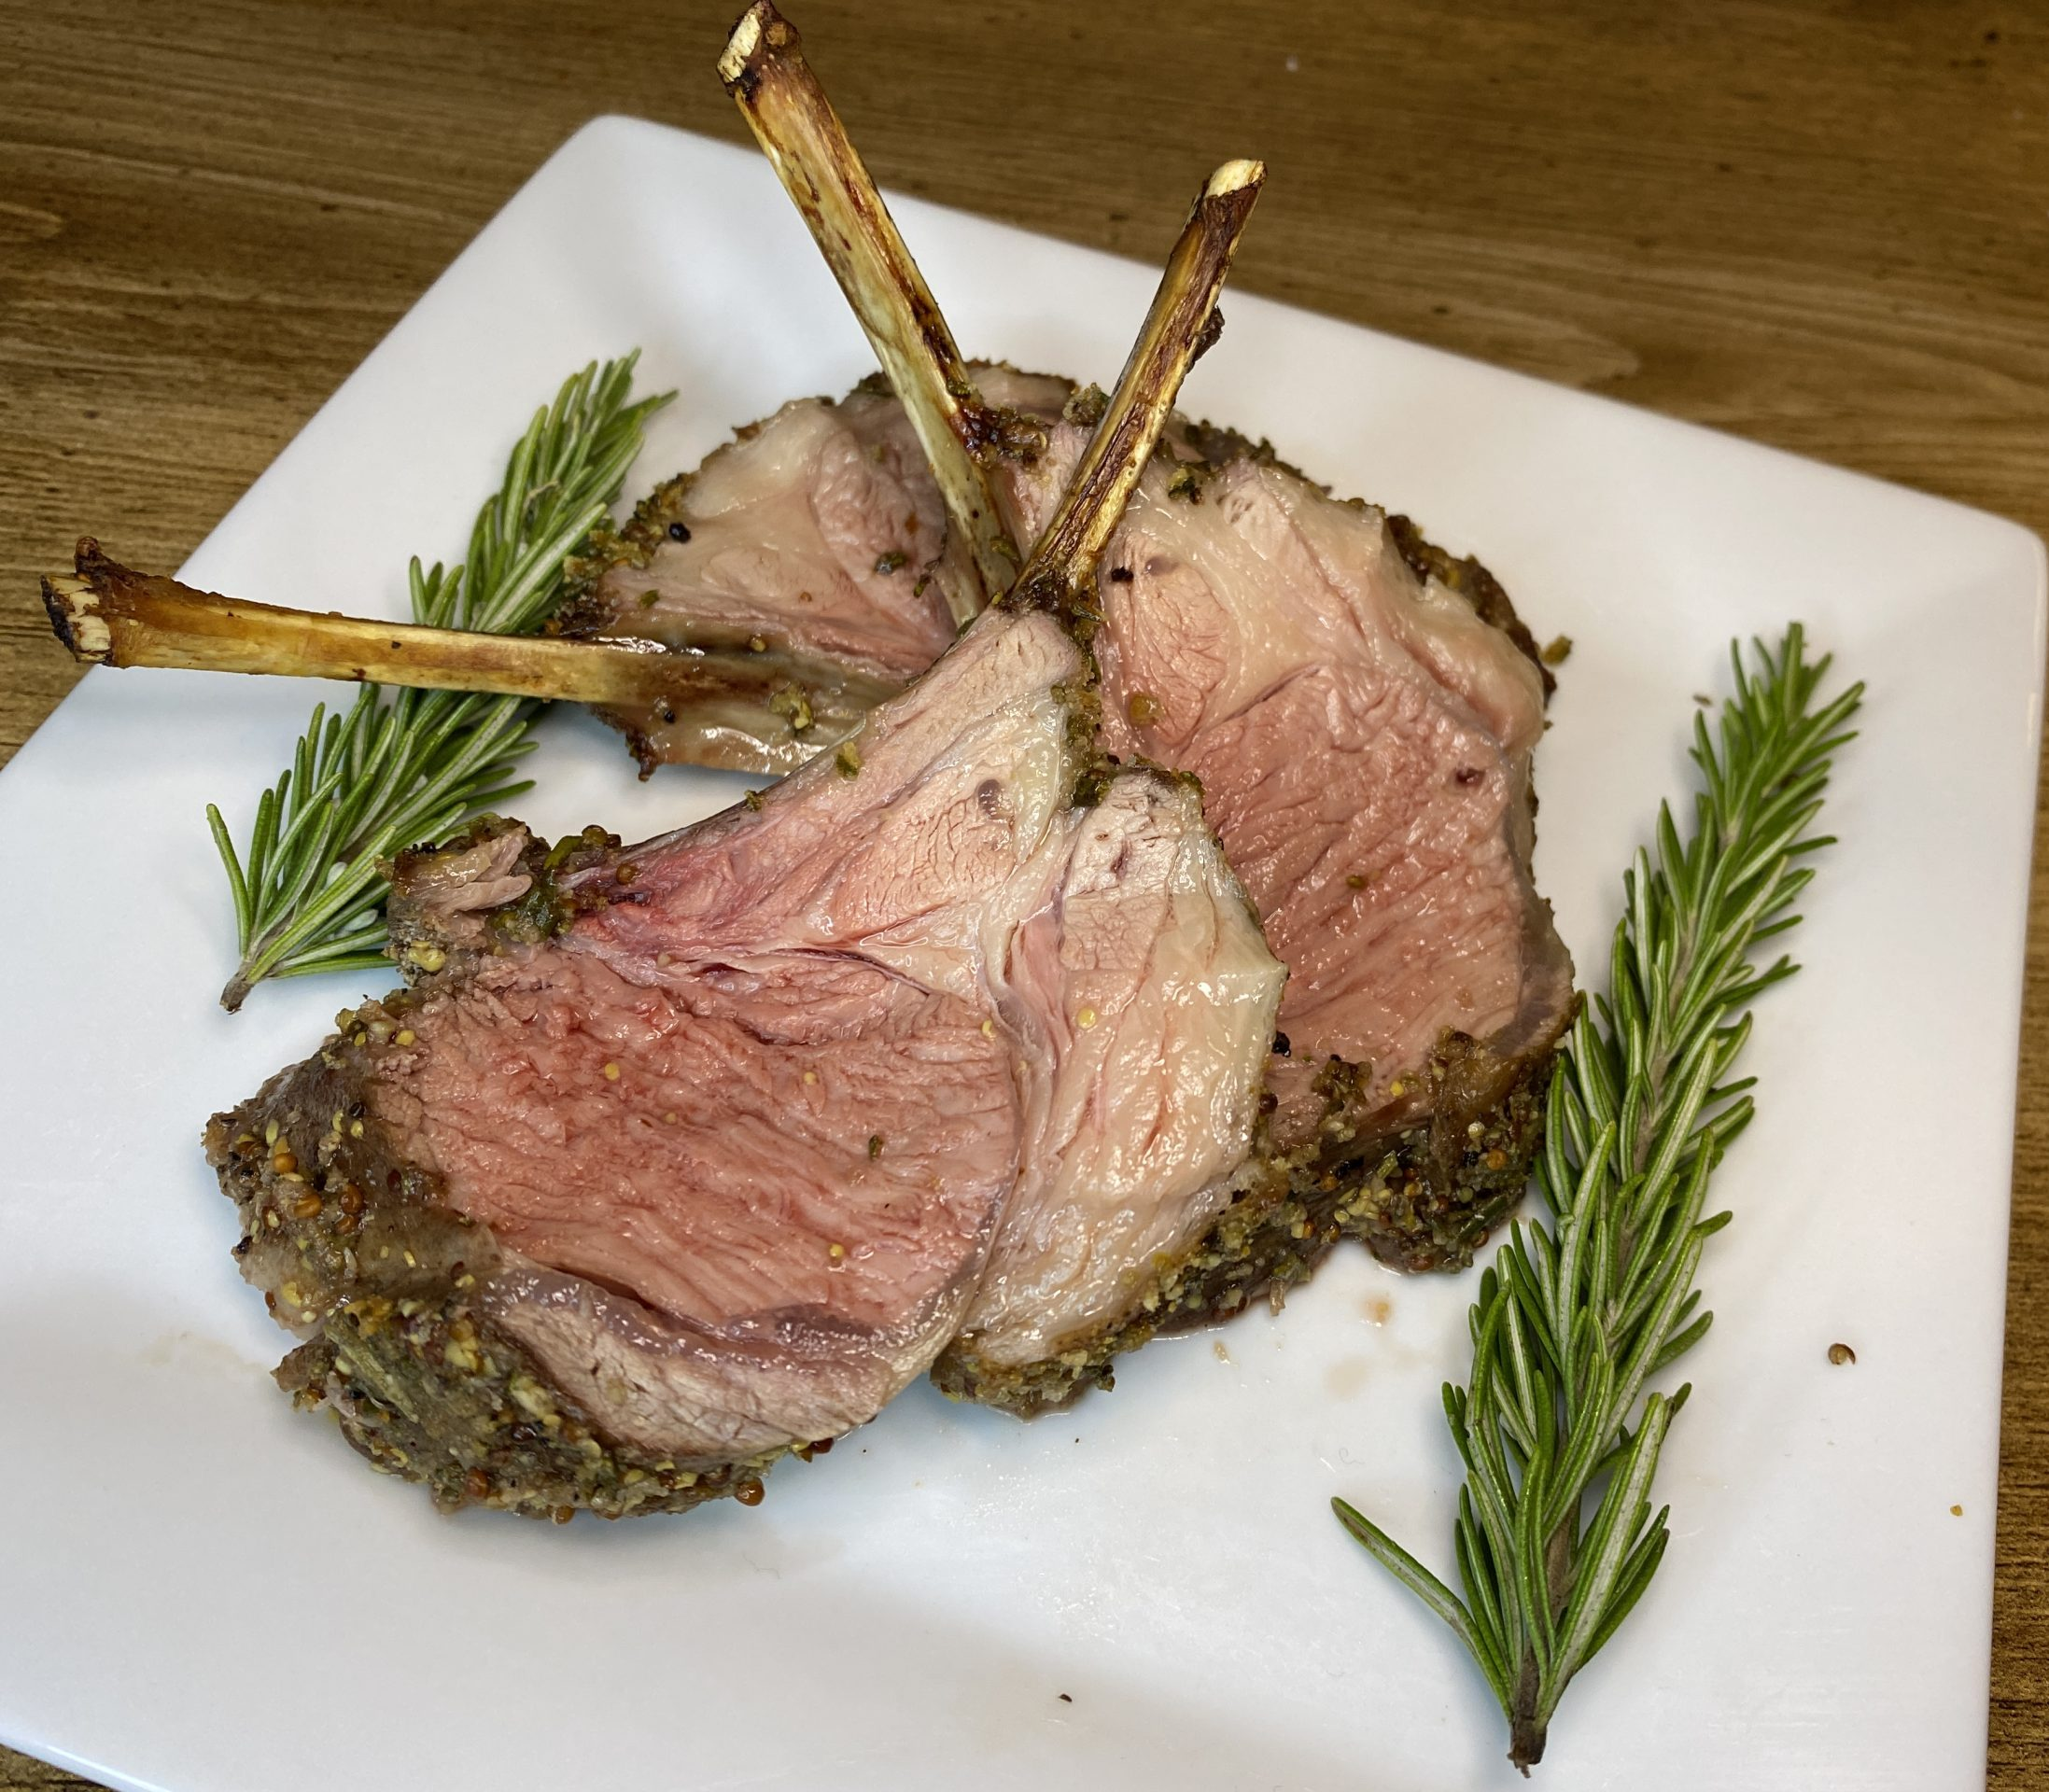 This herb-crusted rack of lamb is a hit with loved ones.